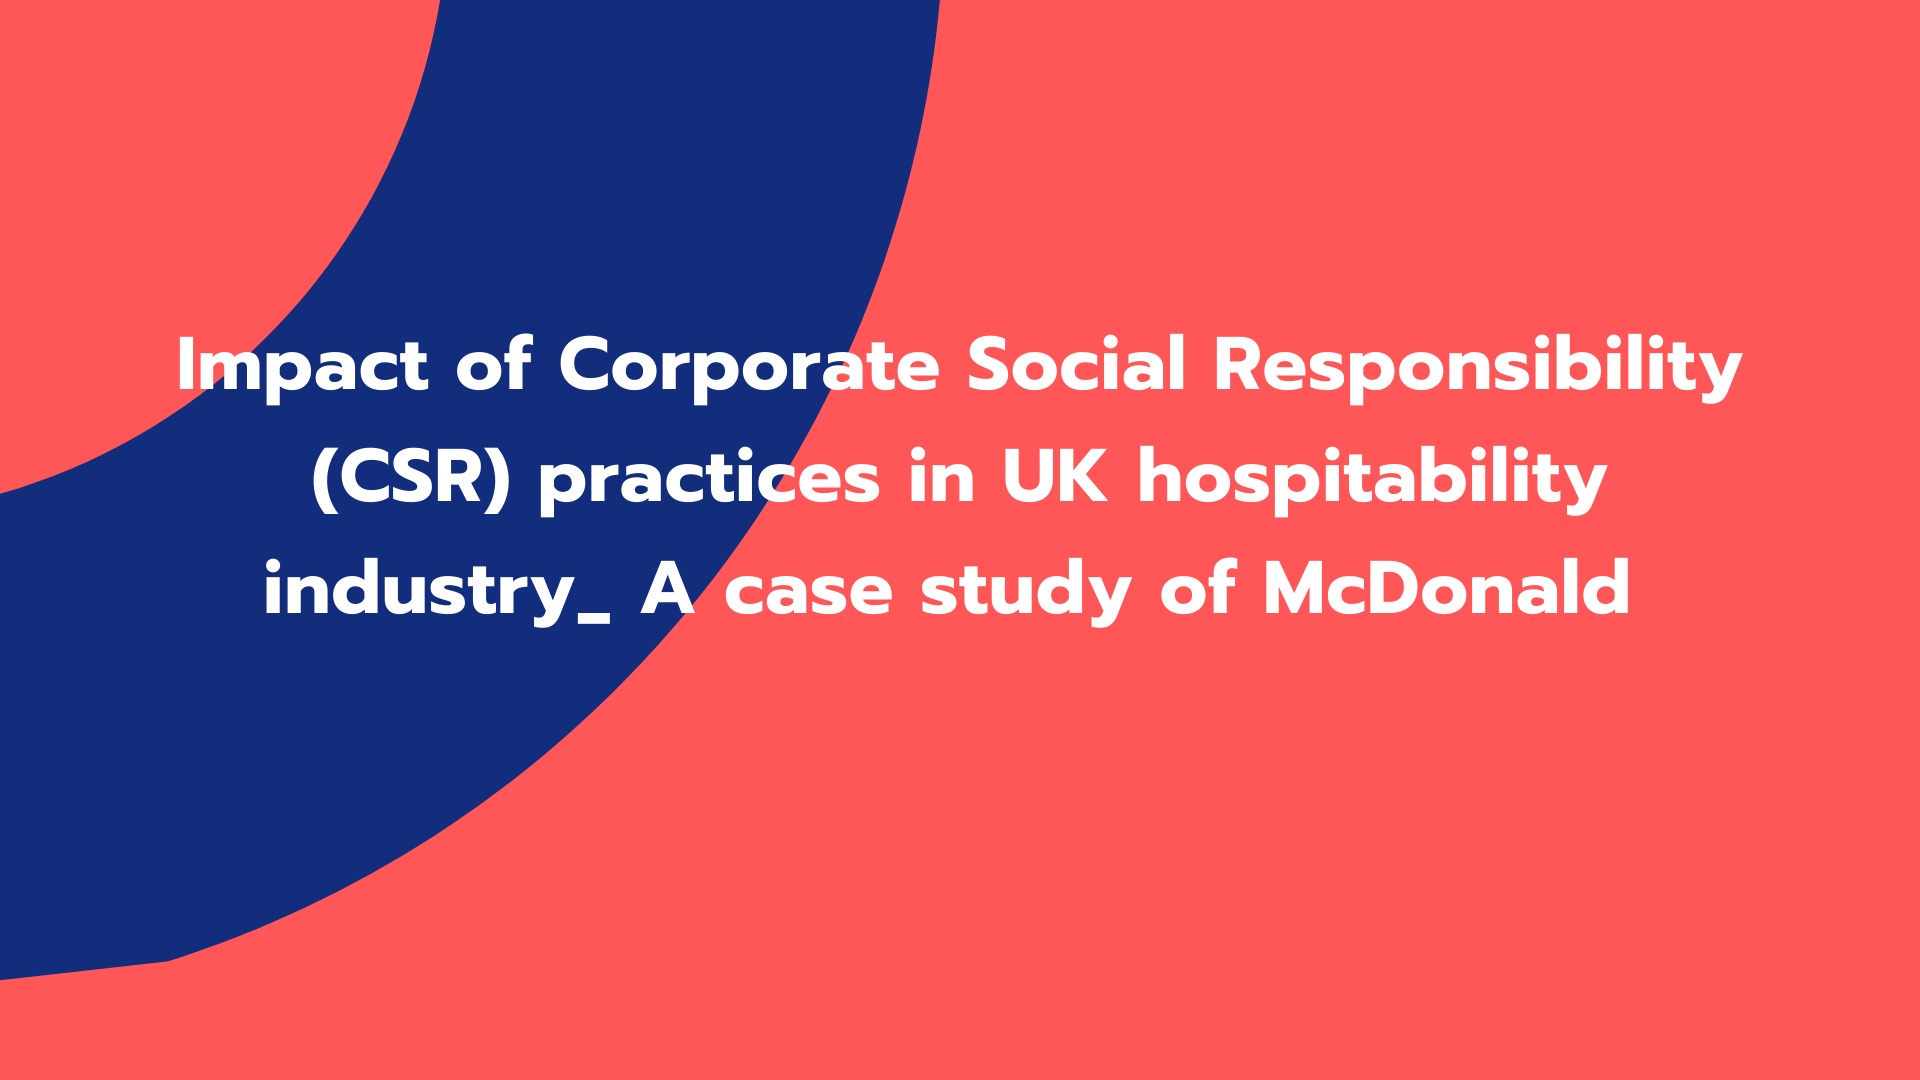 Impact of Corporate Social Responsibility (CSR) practices in UK hospitability industry_ A case study of McDonald